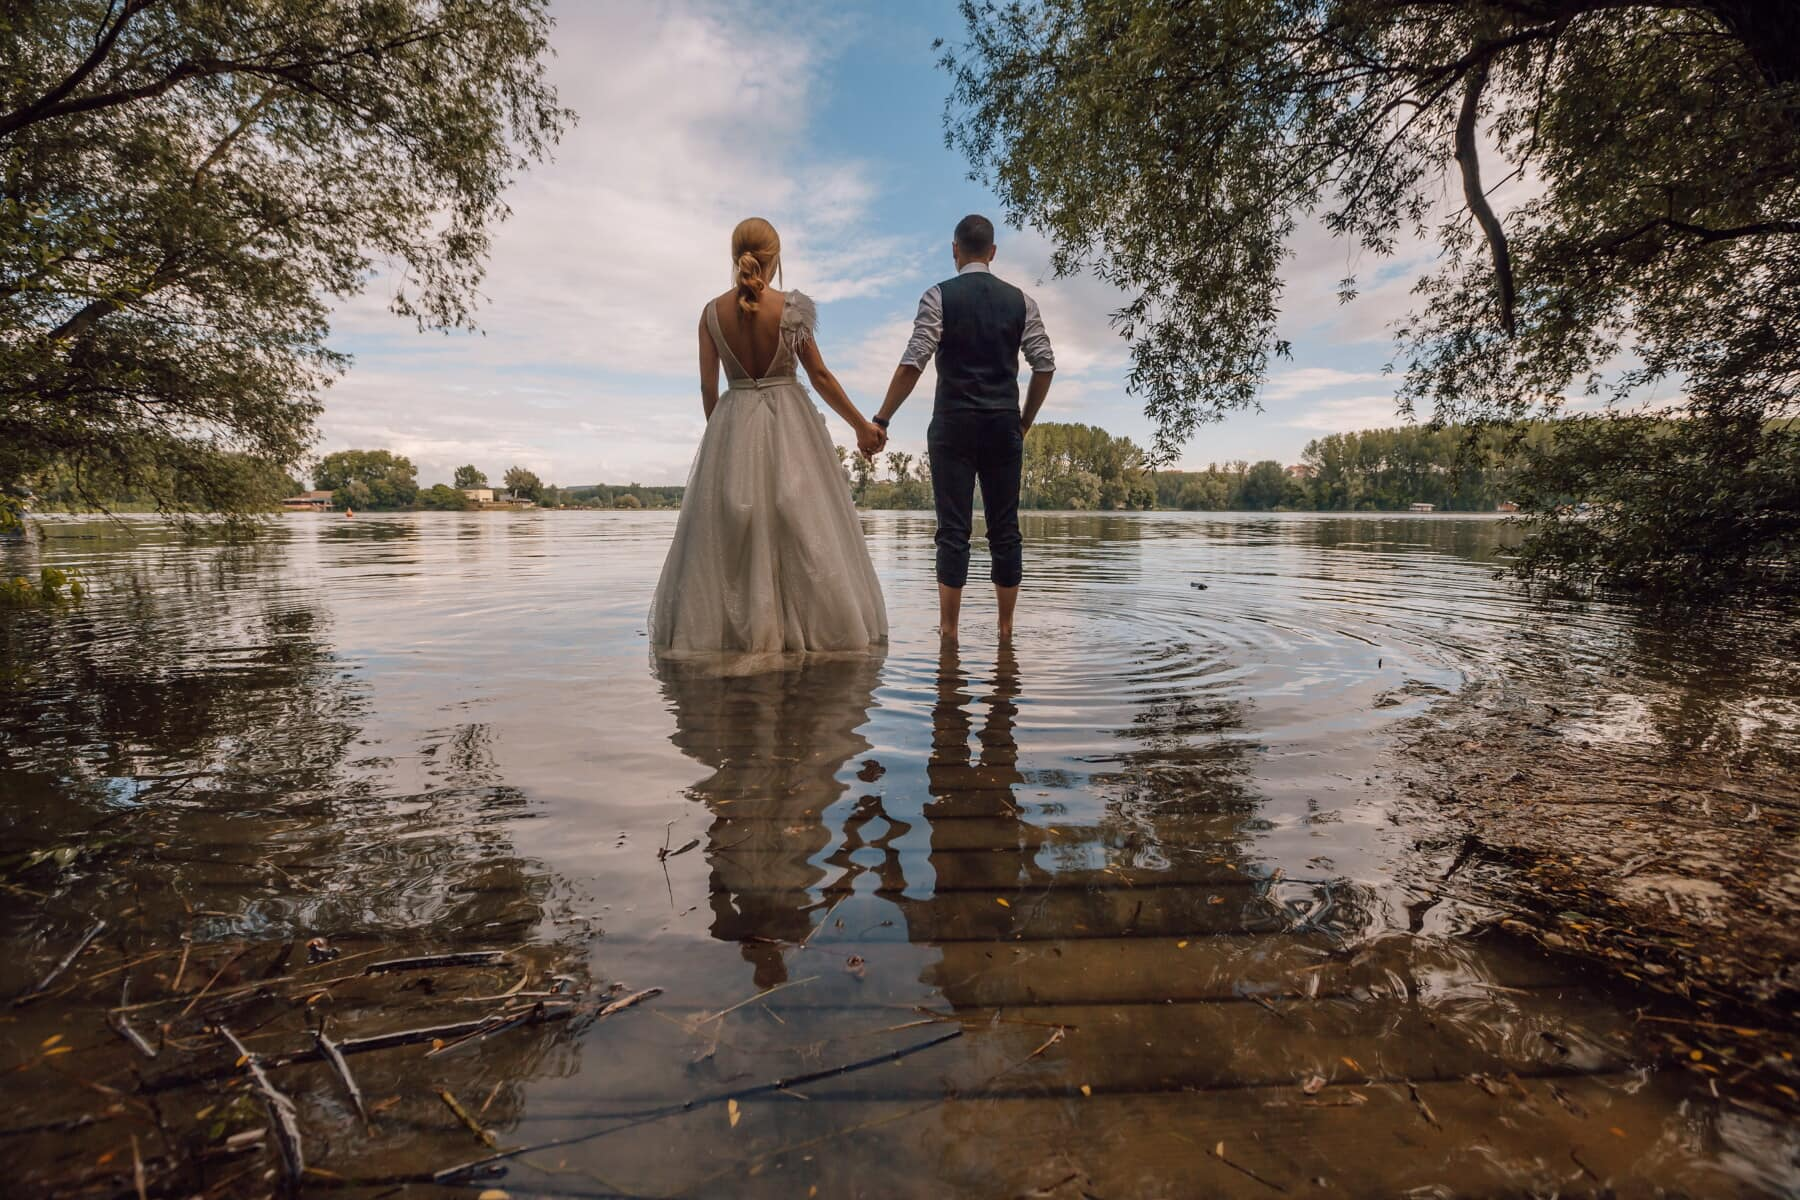 man, together, lakeside, young woman, tuxedo suit, water, barefoot, wet, dress, relaxation